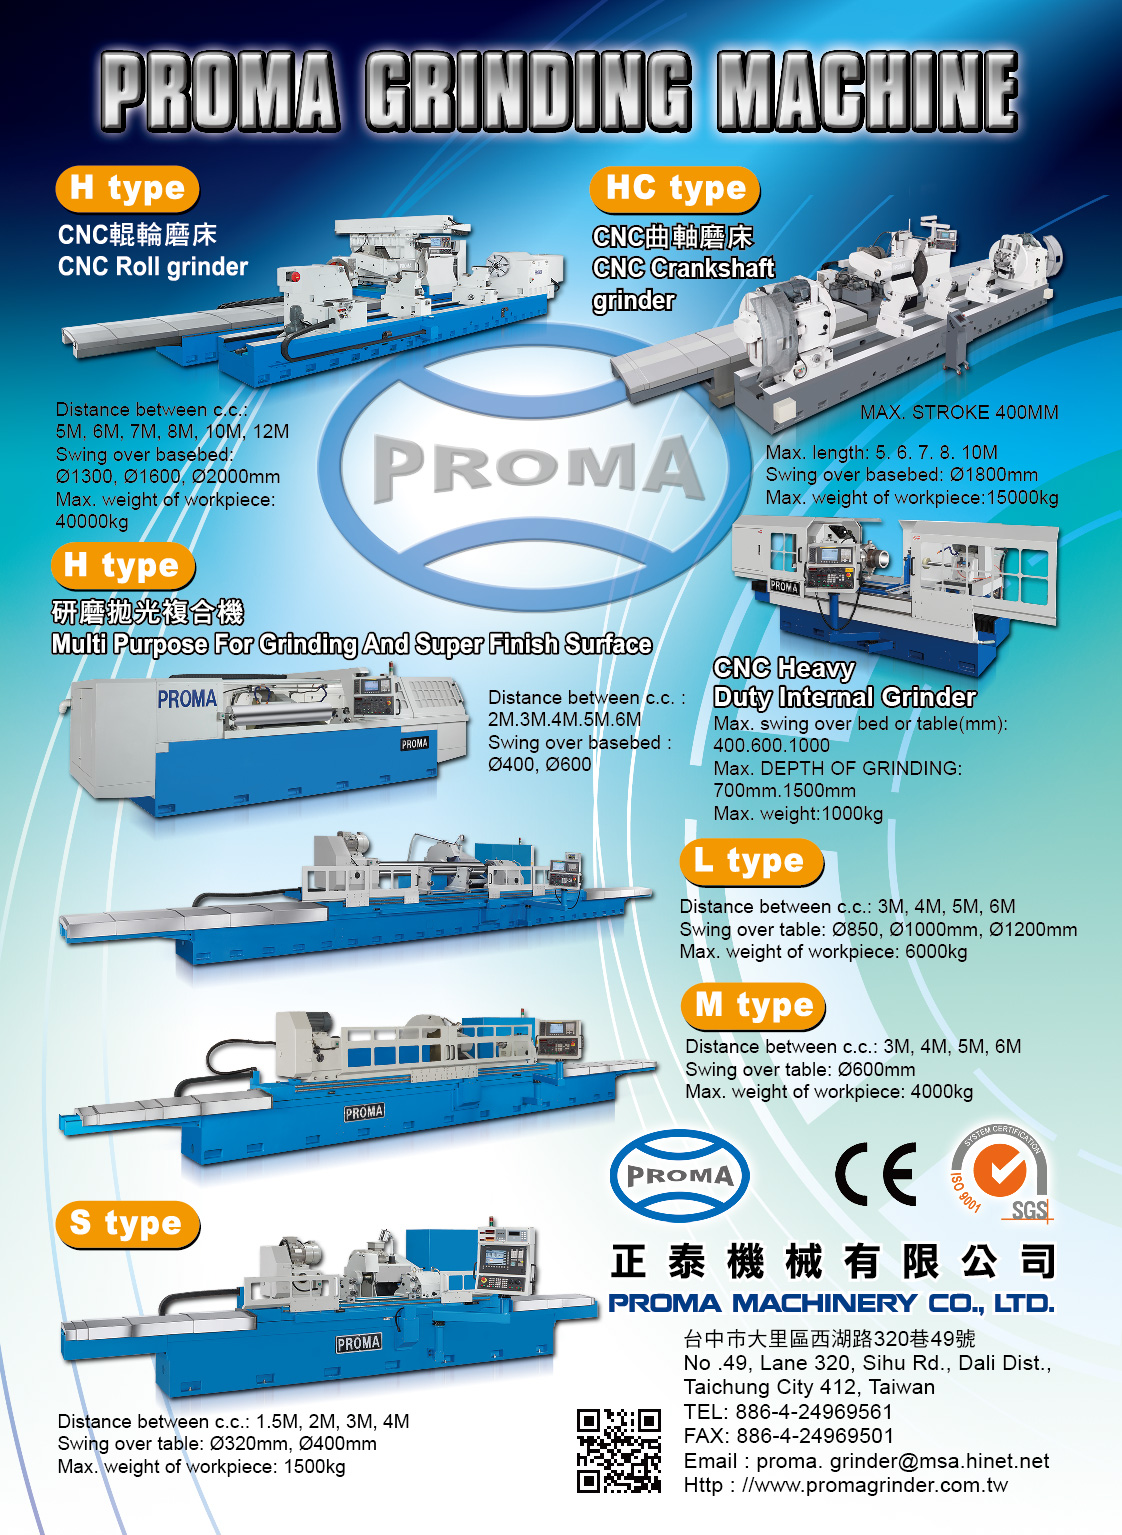 PROMA MACHINERY CO., LTD.